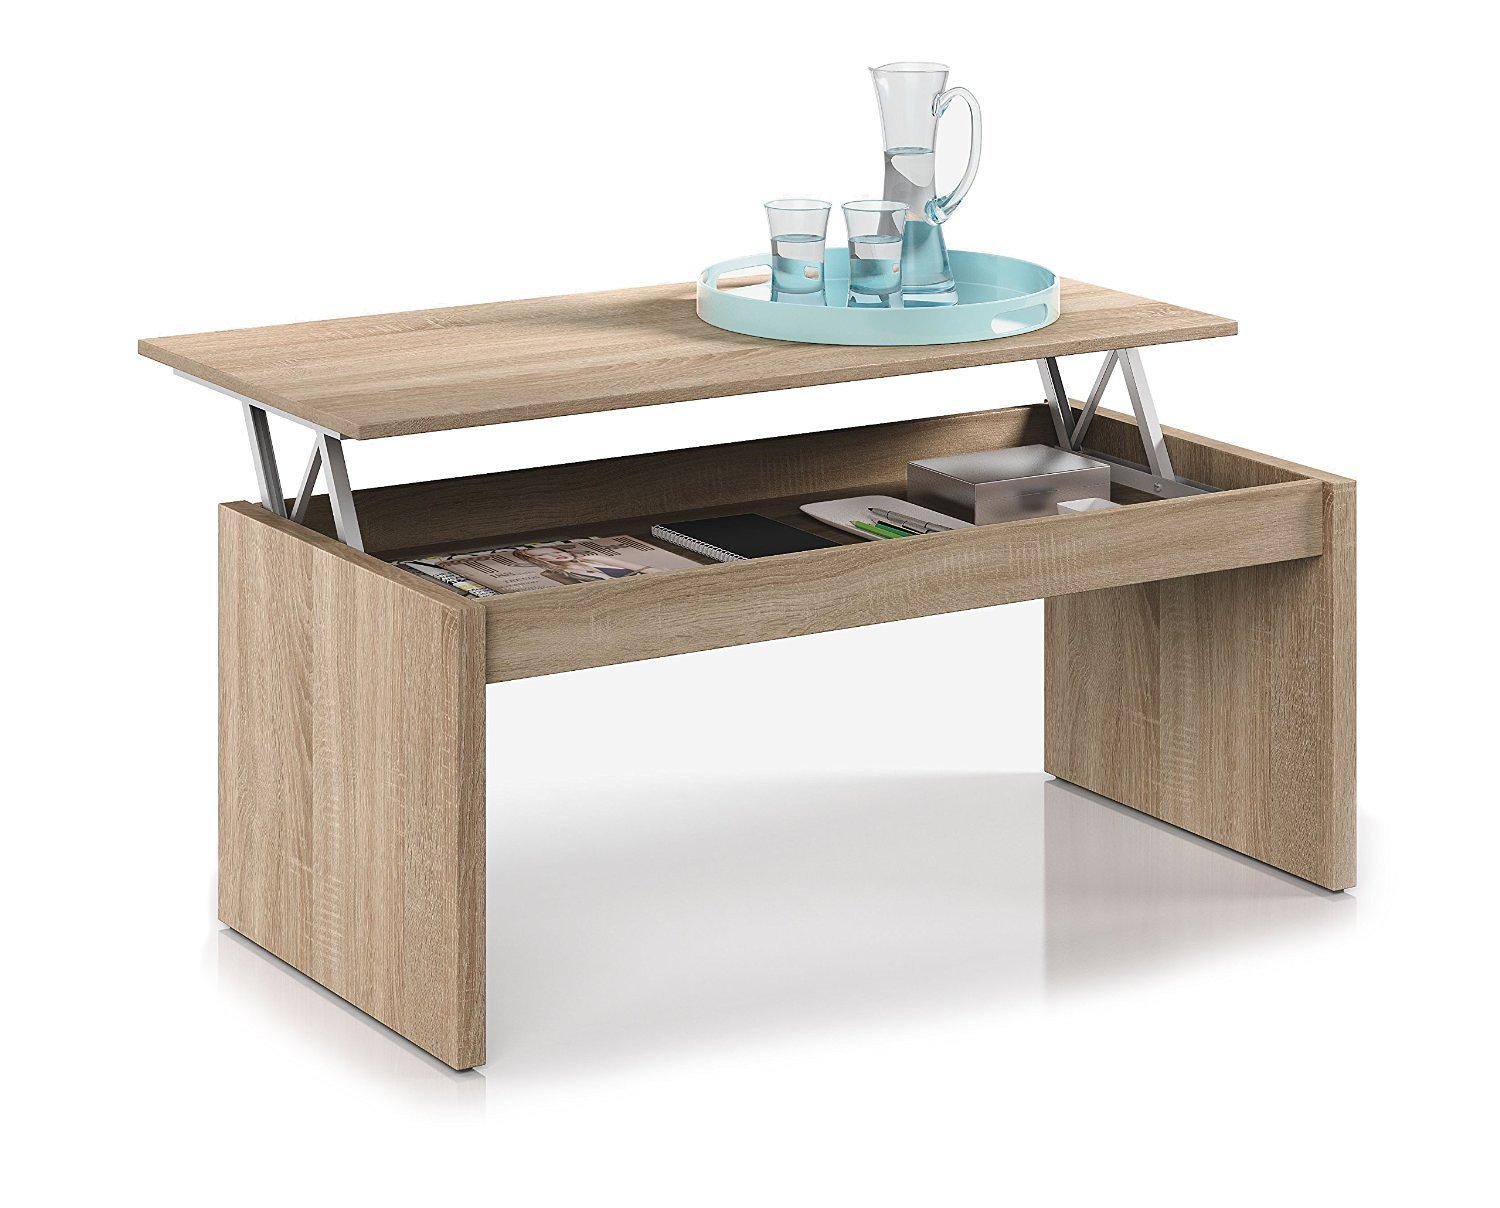 Fabulous habitdesign f table basse chne naturel avec for Table pliante ikea